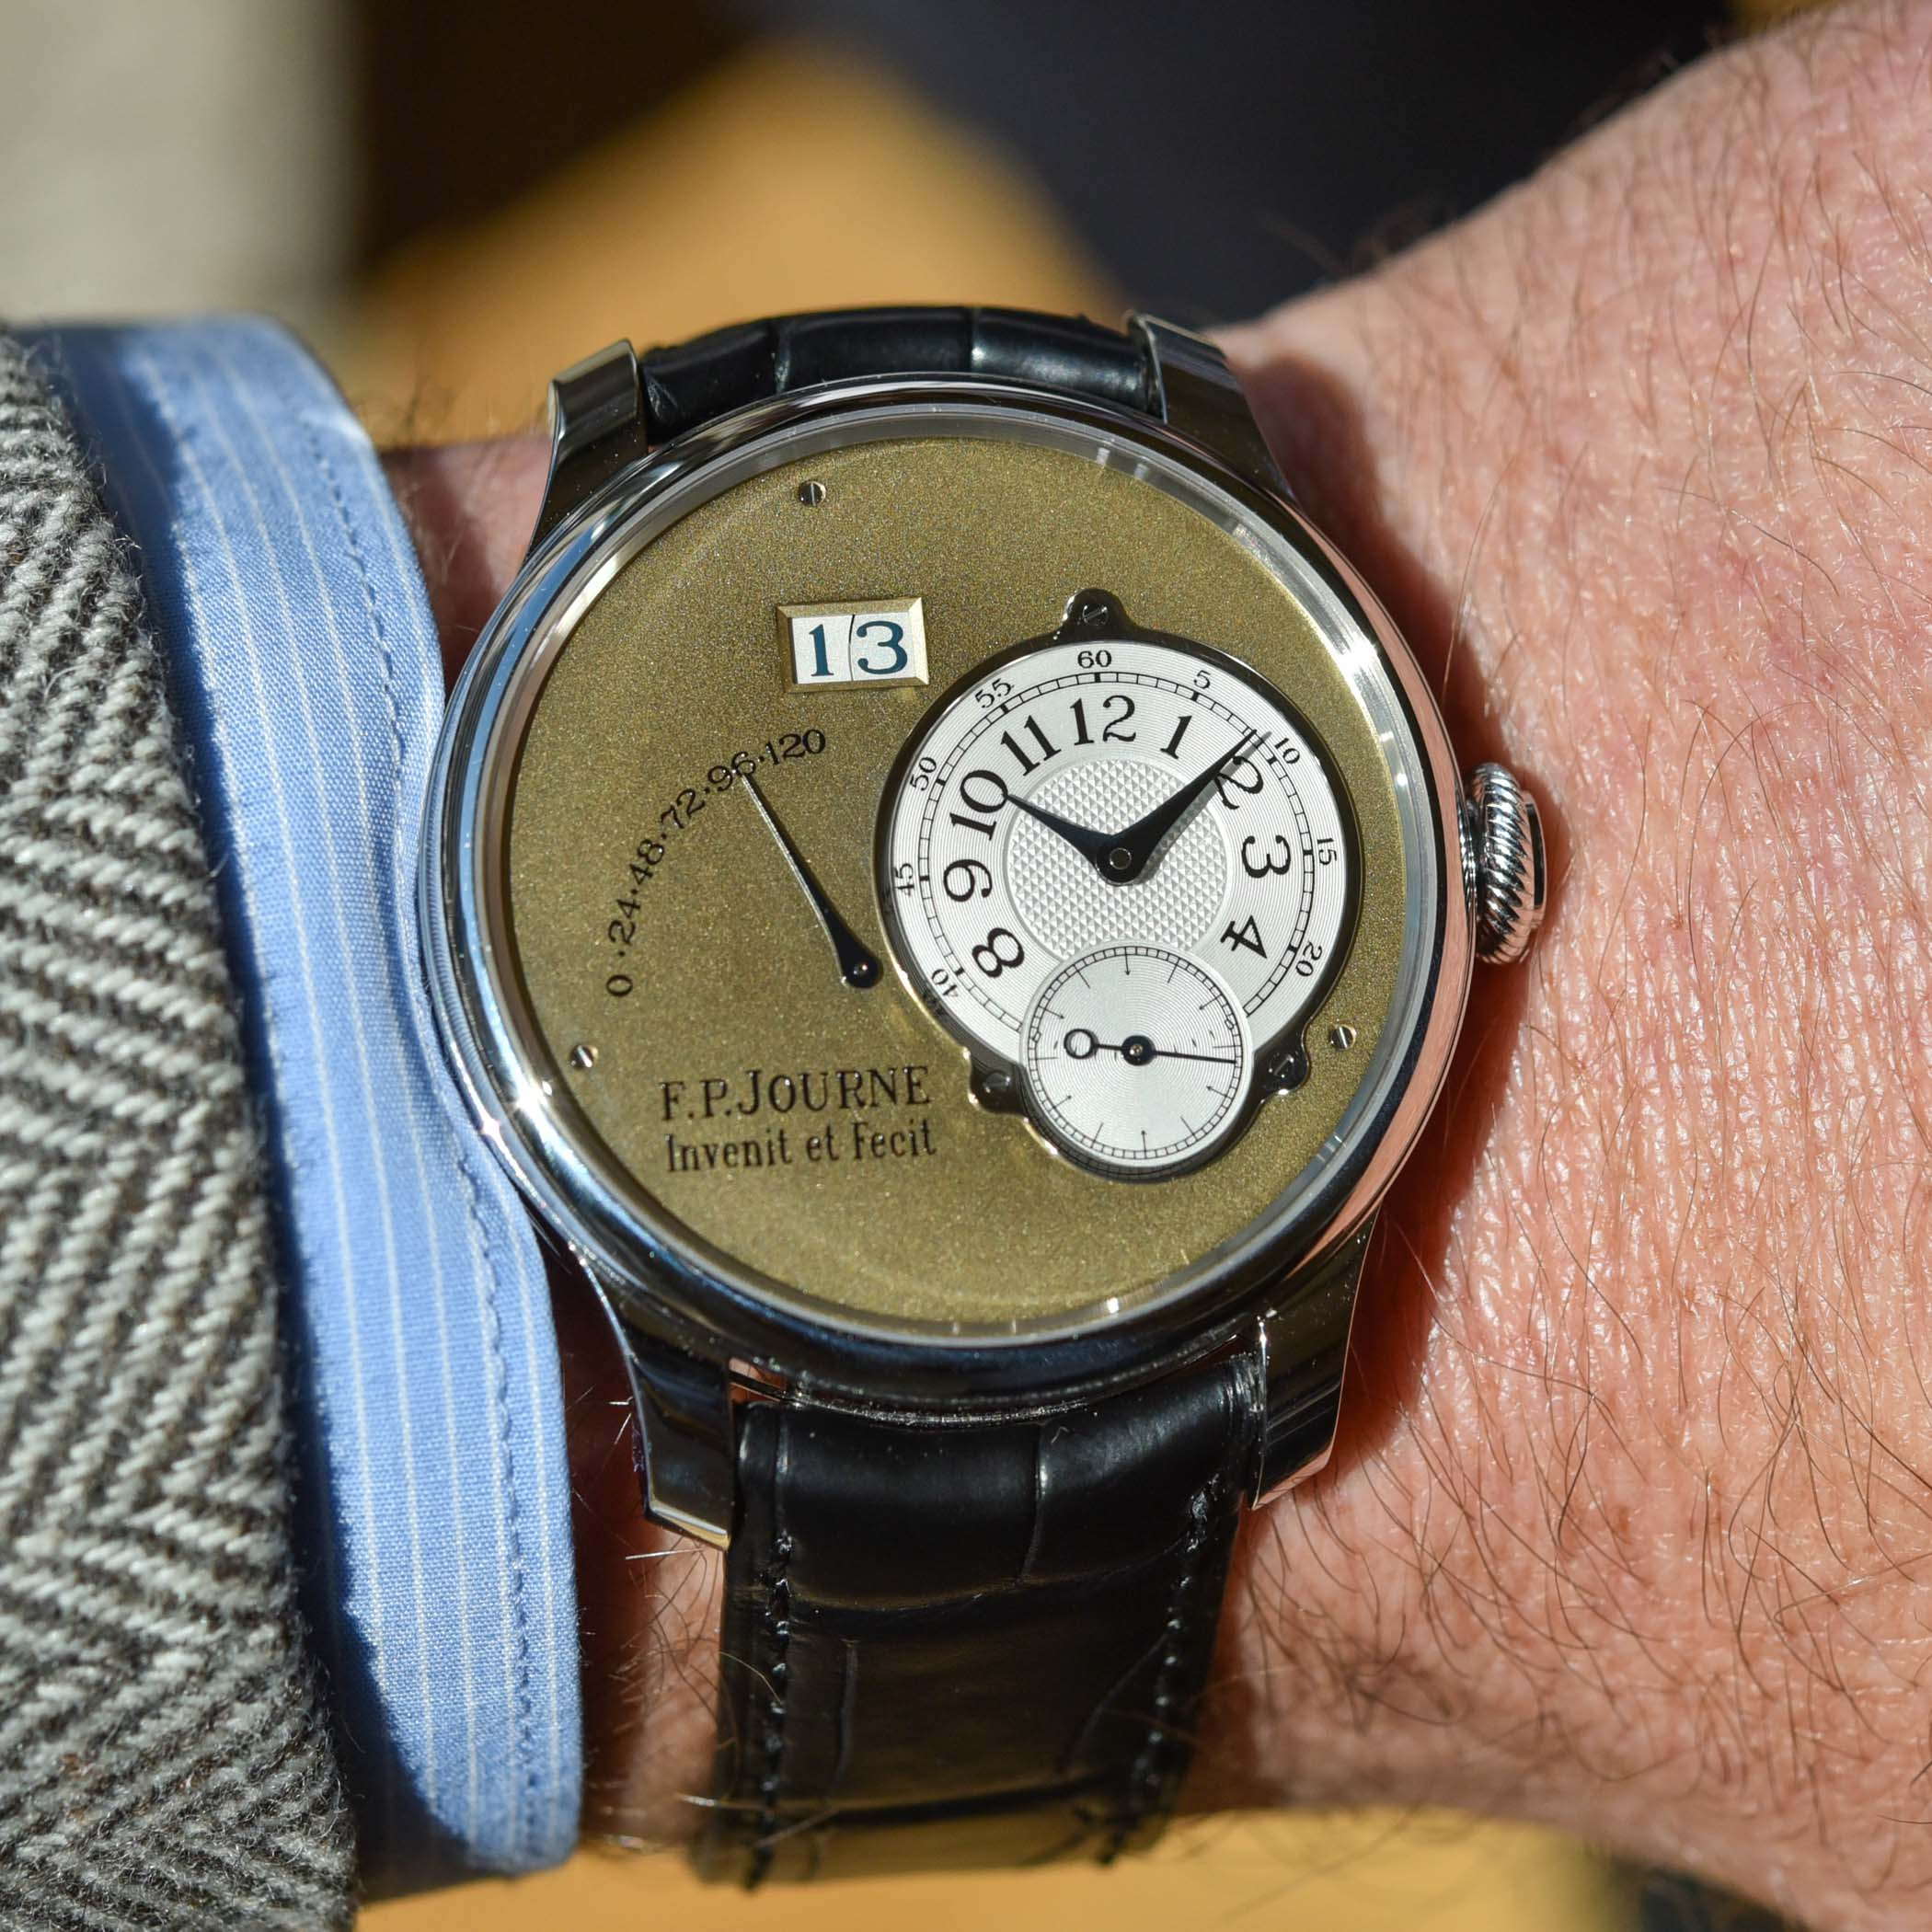 FP Journe Automatique Limited Edition 20th anniversary Octa - review - 3